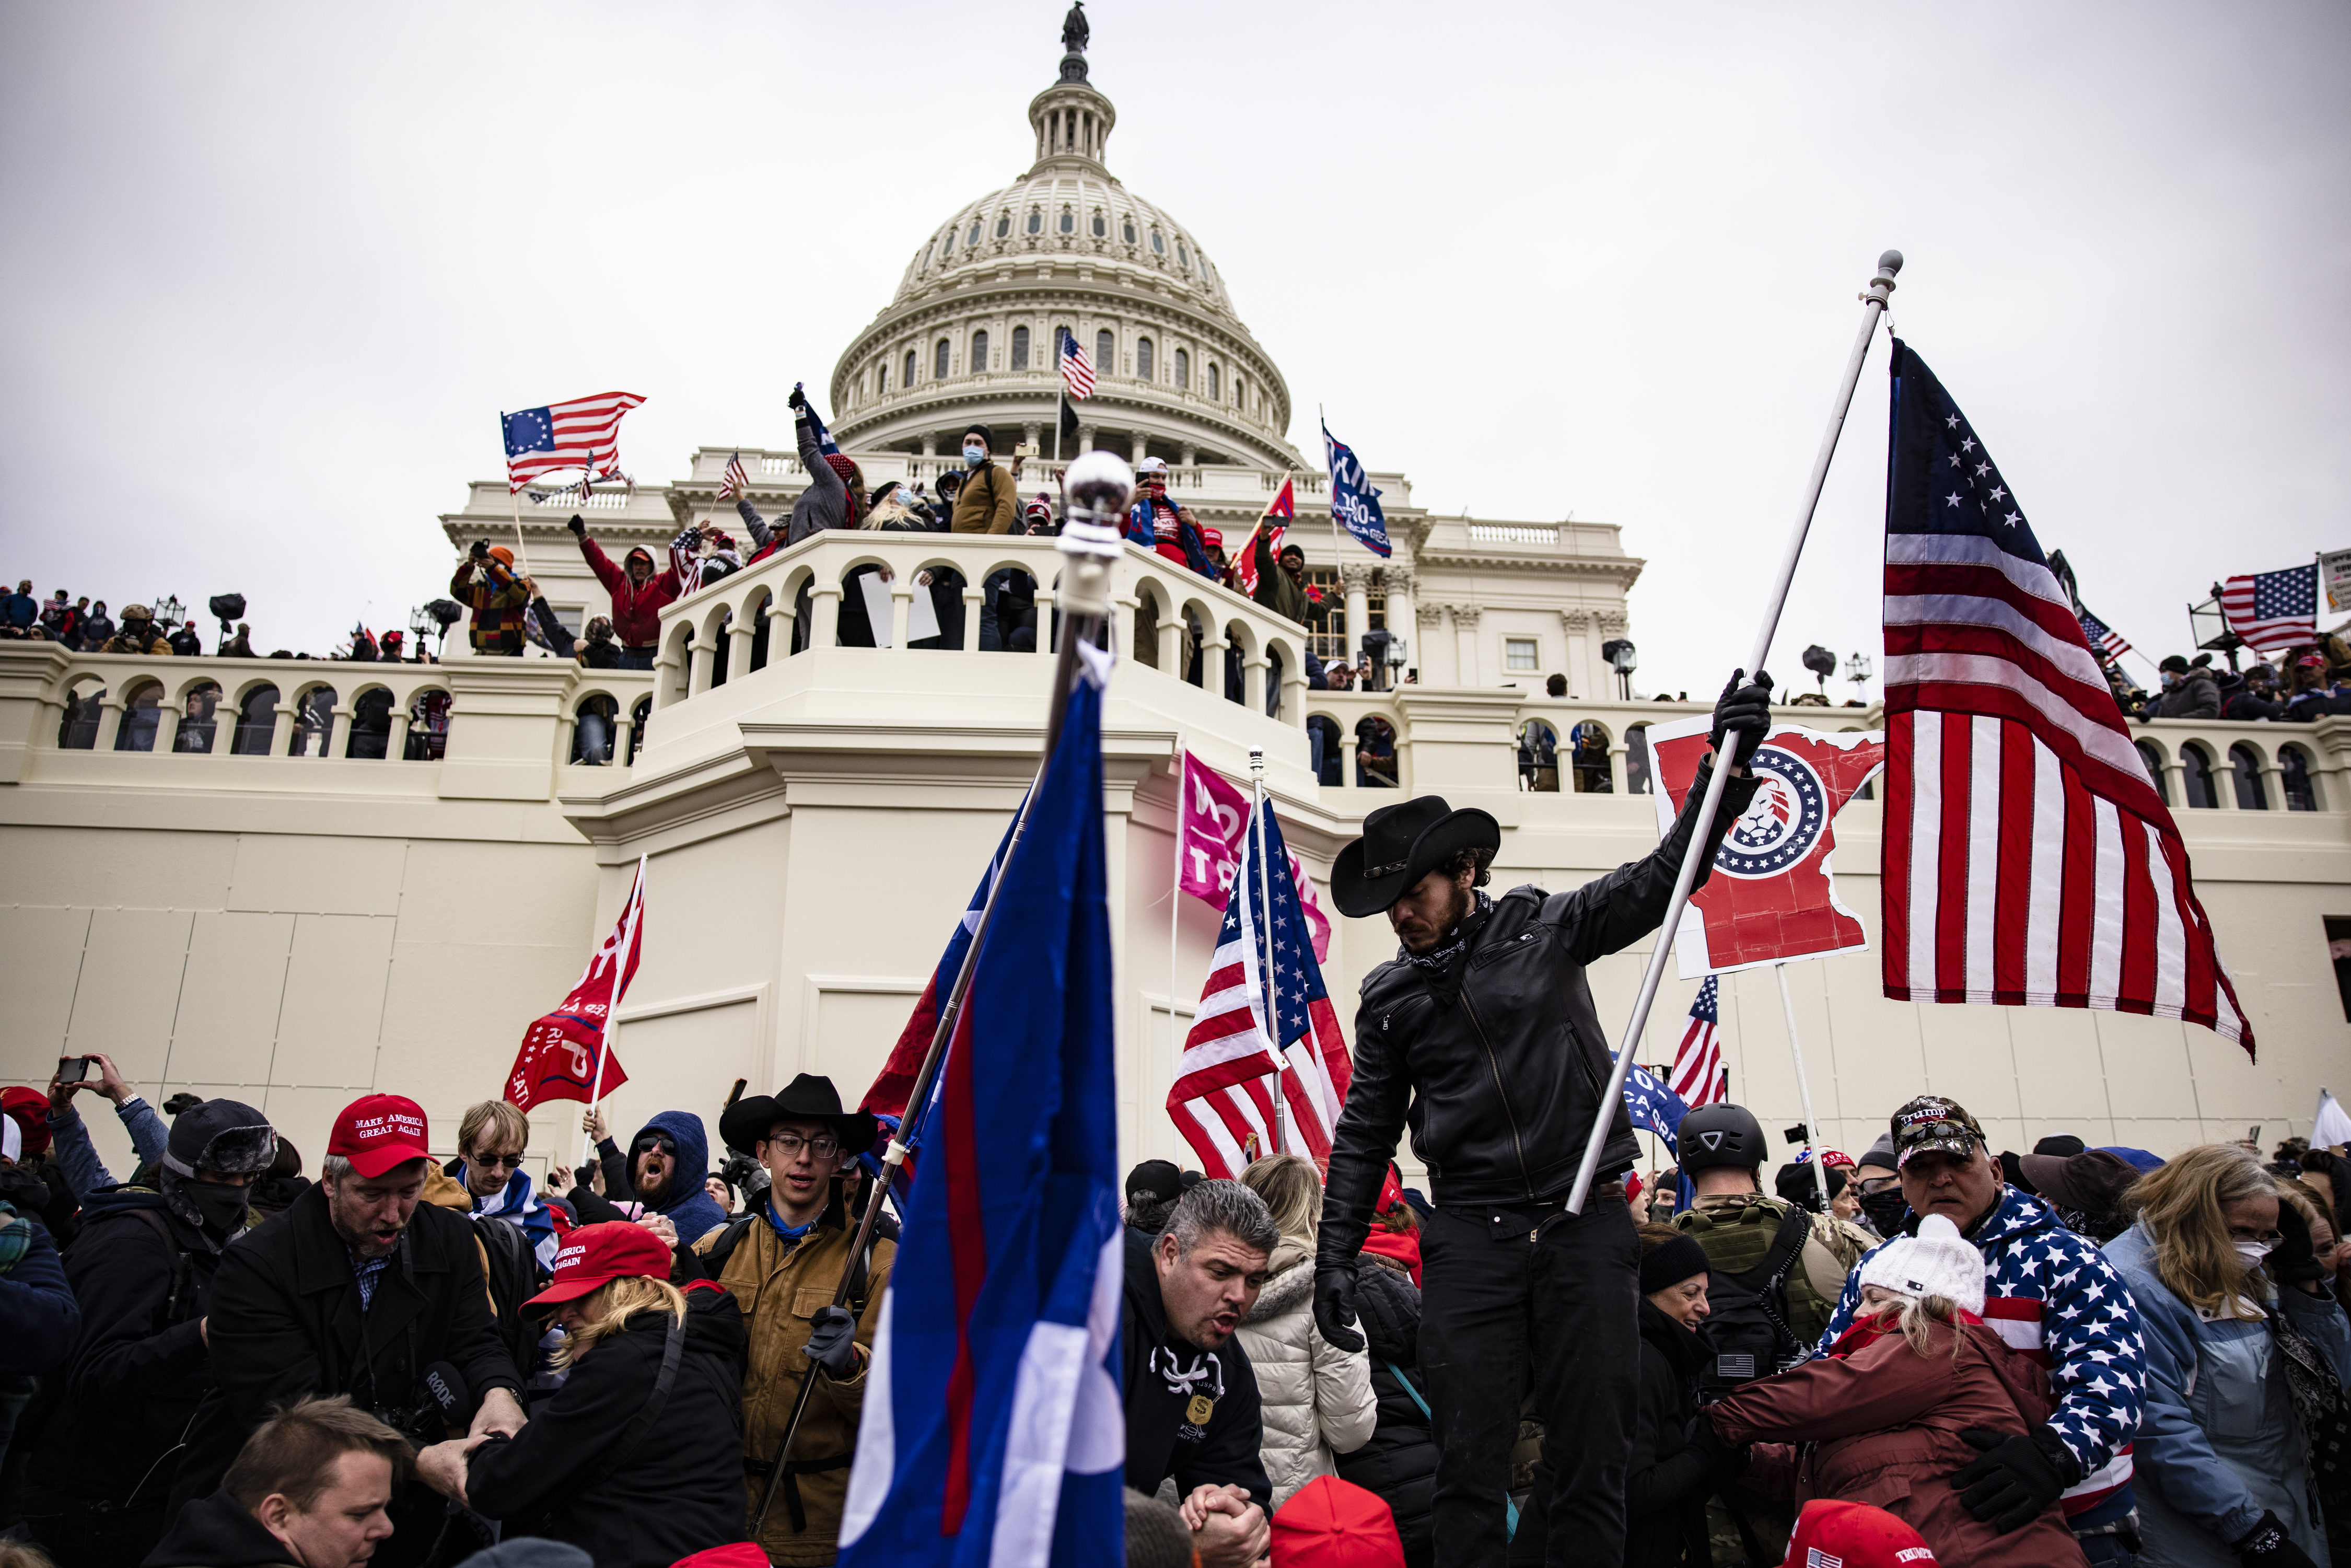 NBA players react to assault on US Capitol